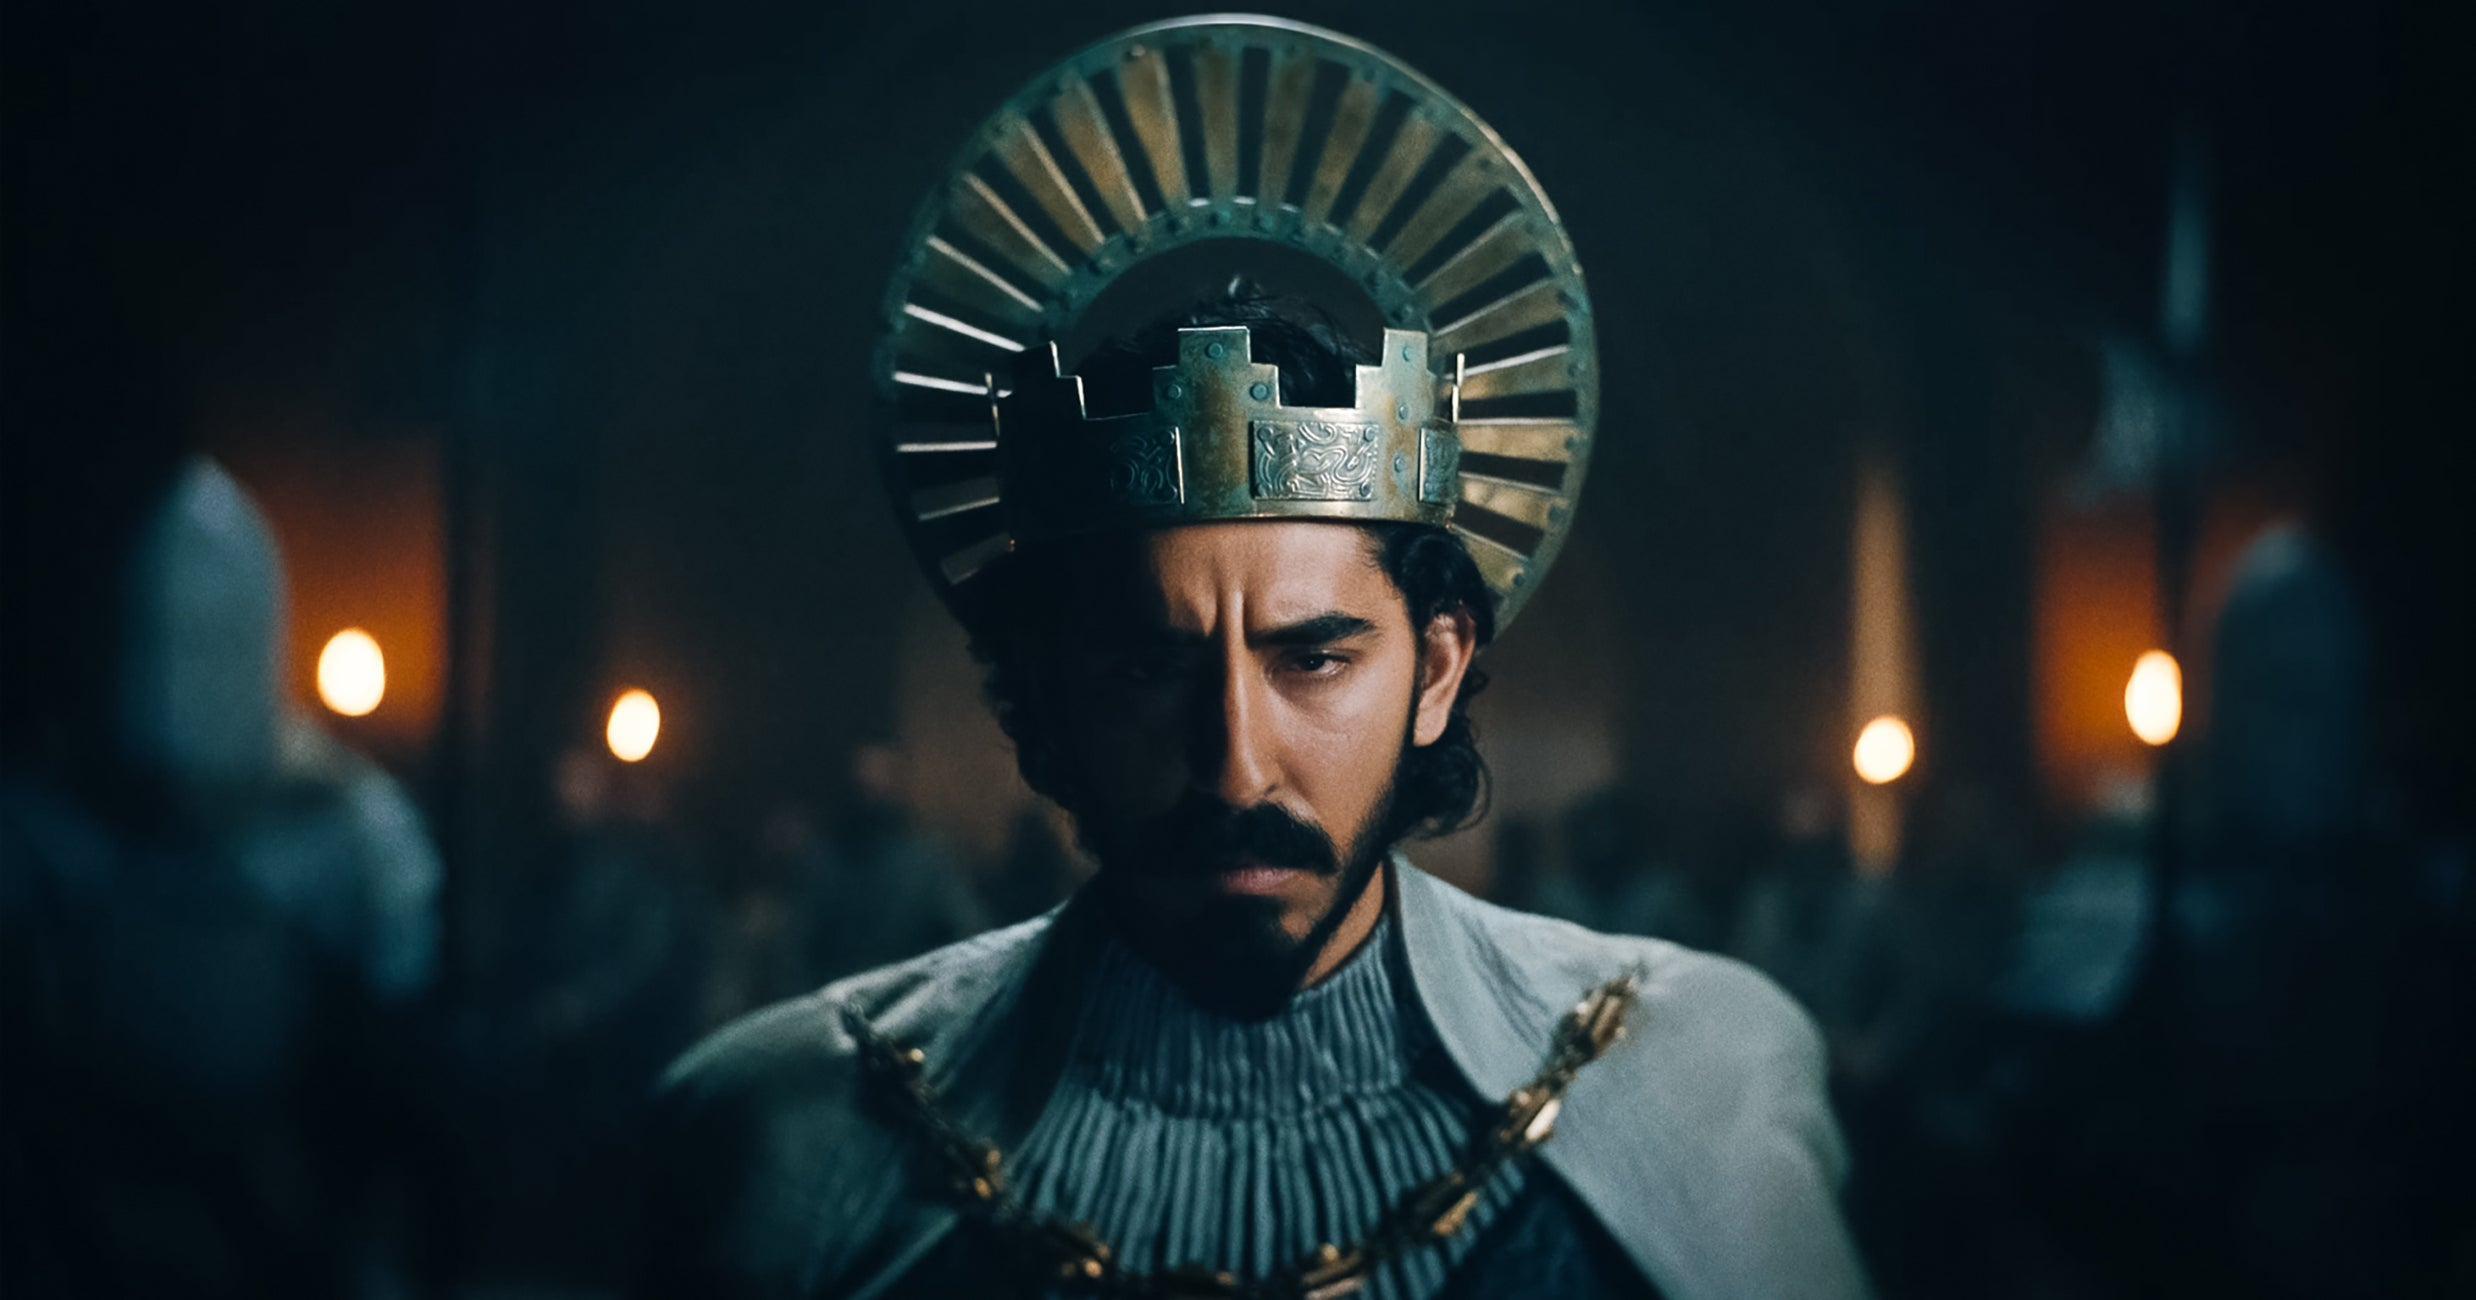 Dev Patel His Flowing Locks Take The Crown In The Green Knight Trailer